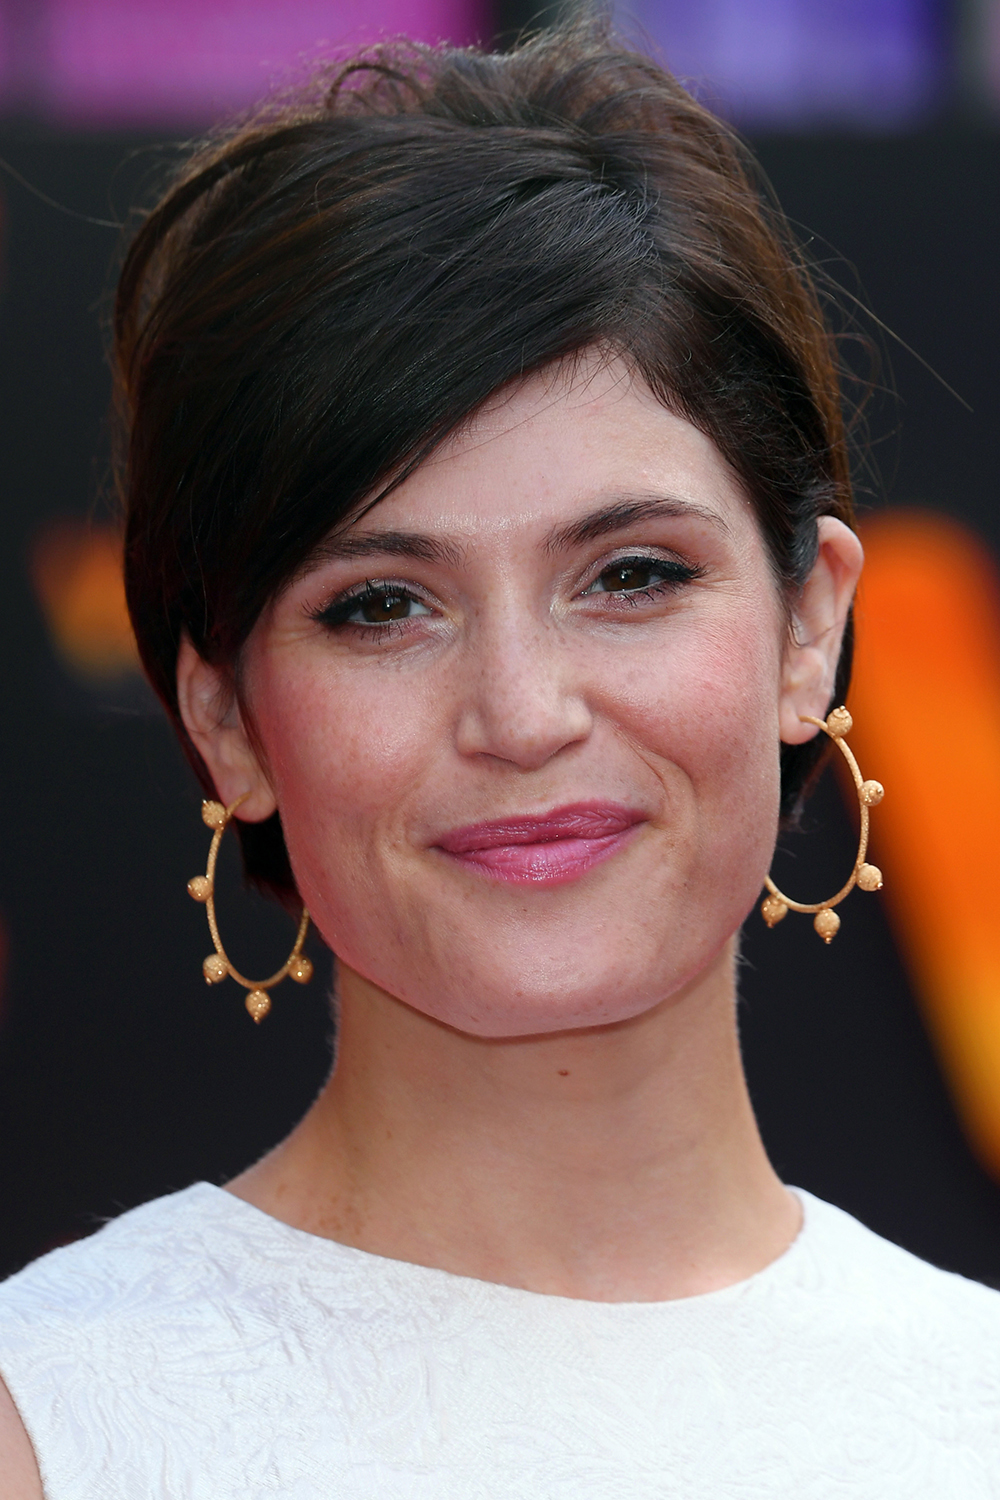 Gemma Arterton spills her beauty secrets